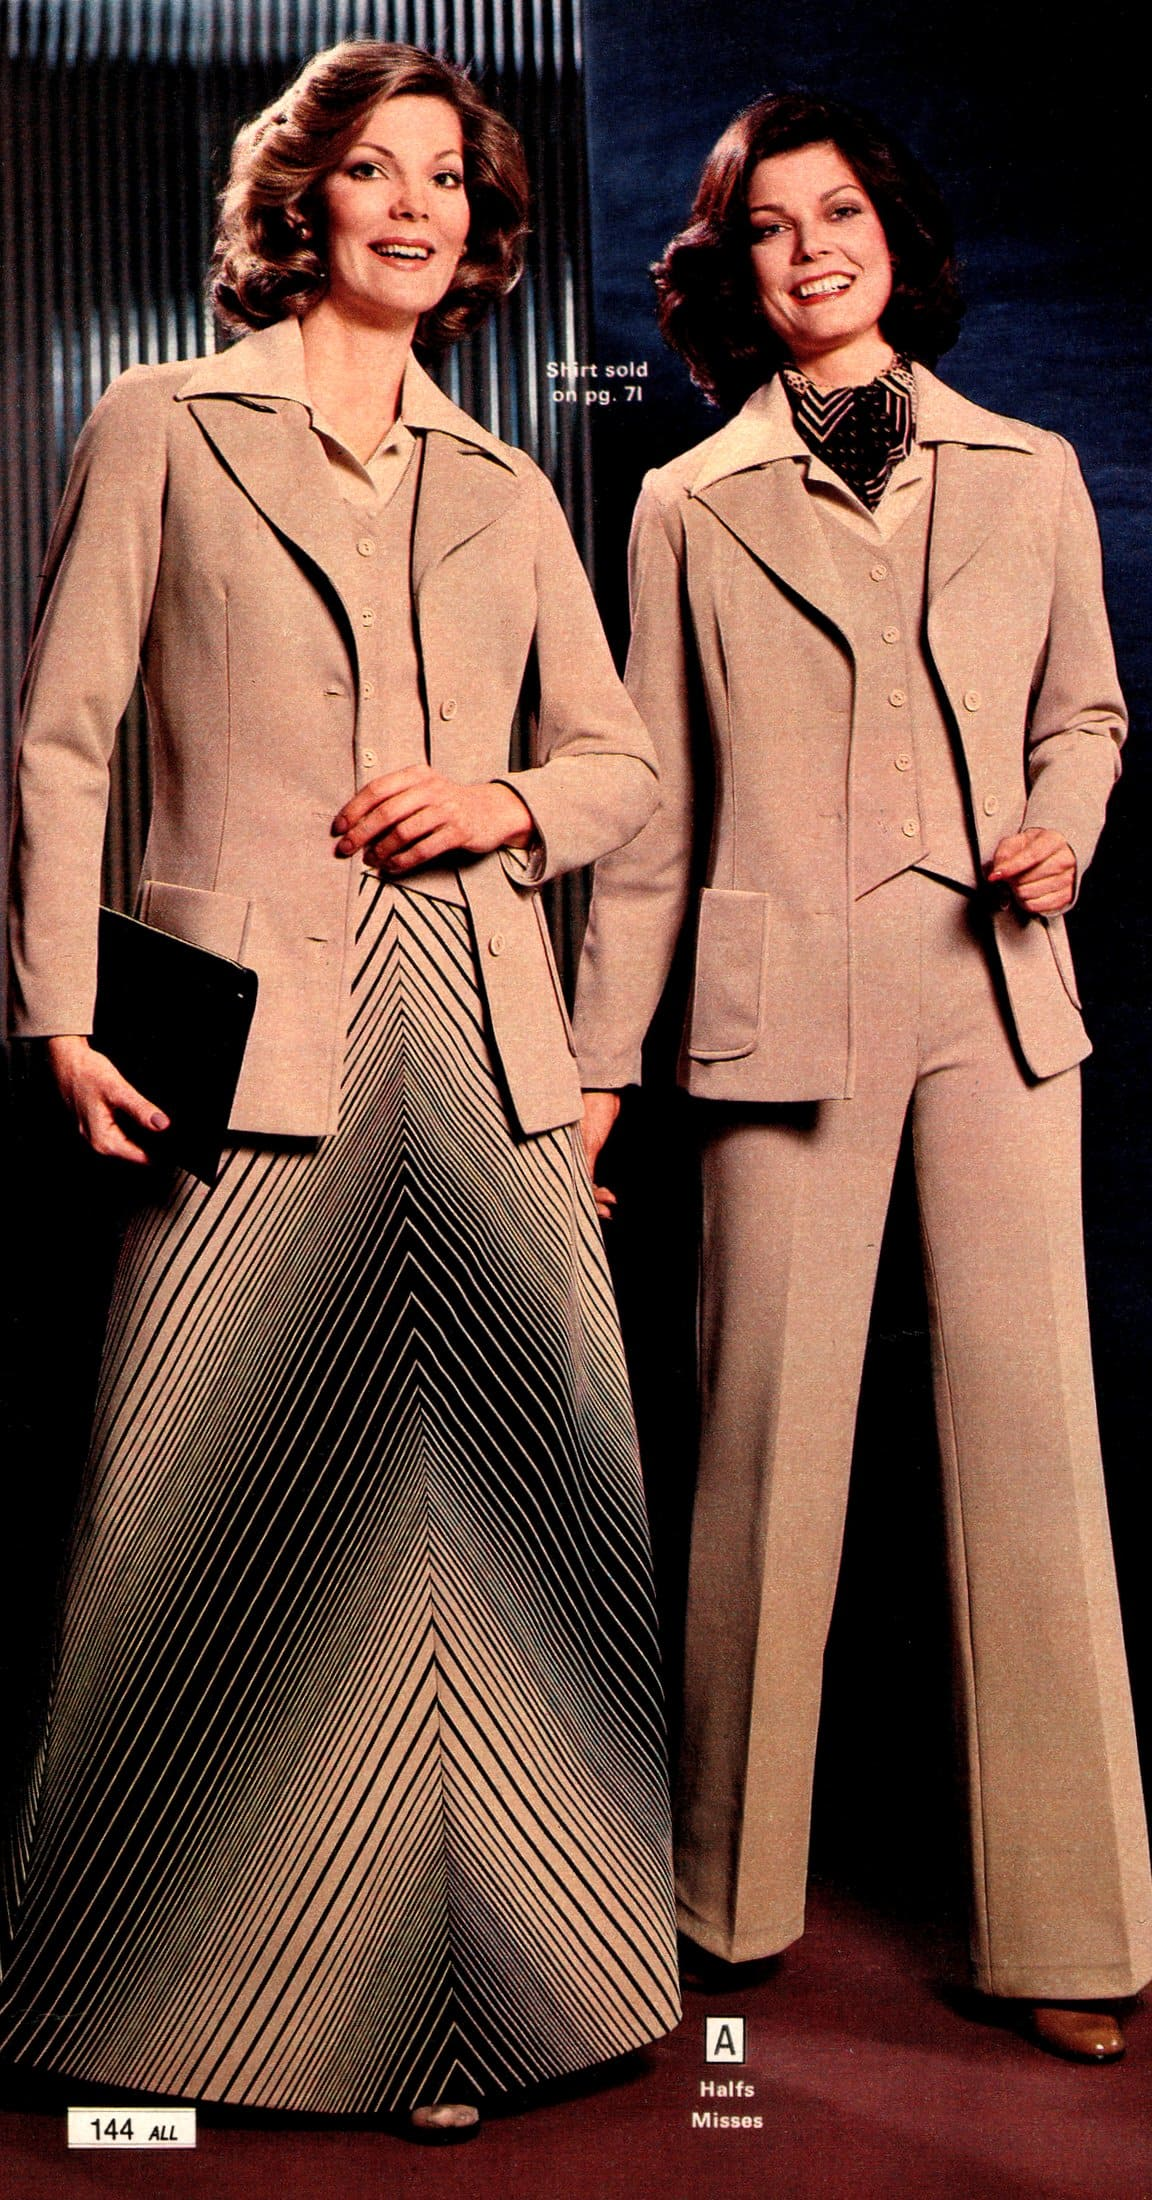 Pantsuit and suit with a skirt - Vintage fashion for women in tan (1979)